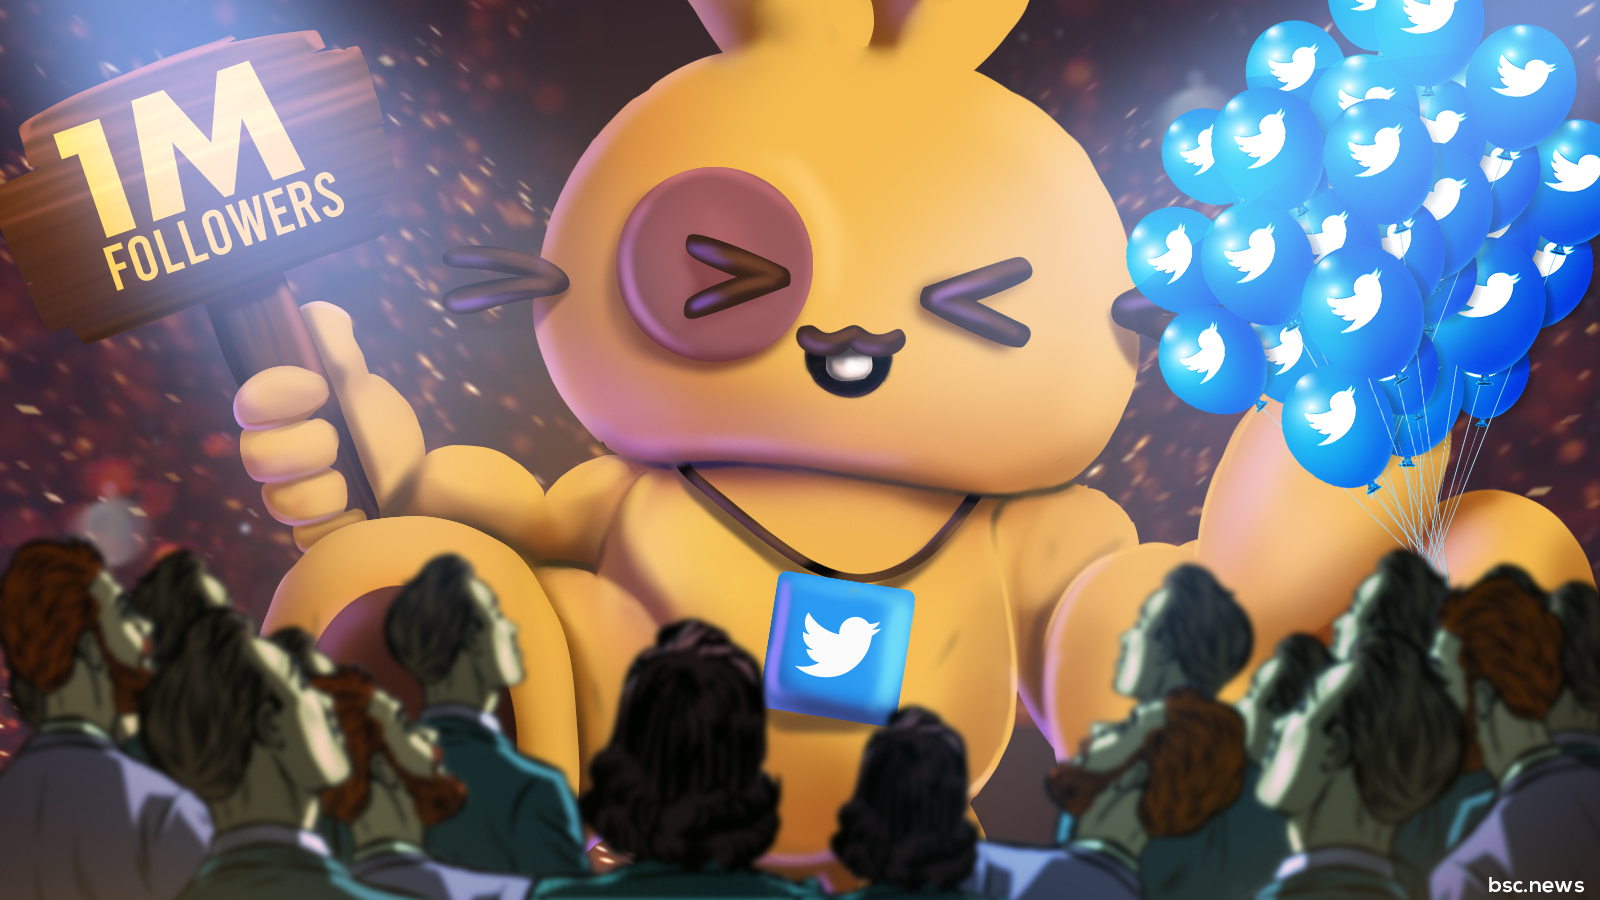 PancakeSwap Crosses 1,000,000 Twitter Followers, What's Next for This BSC Giant?